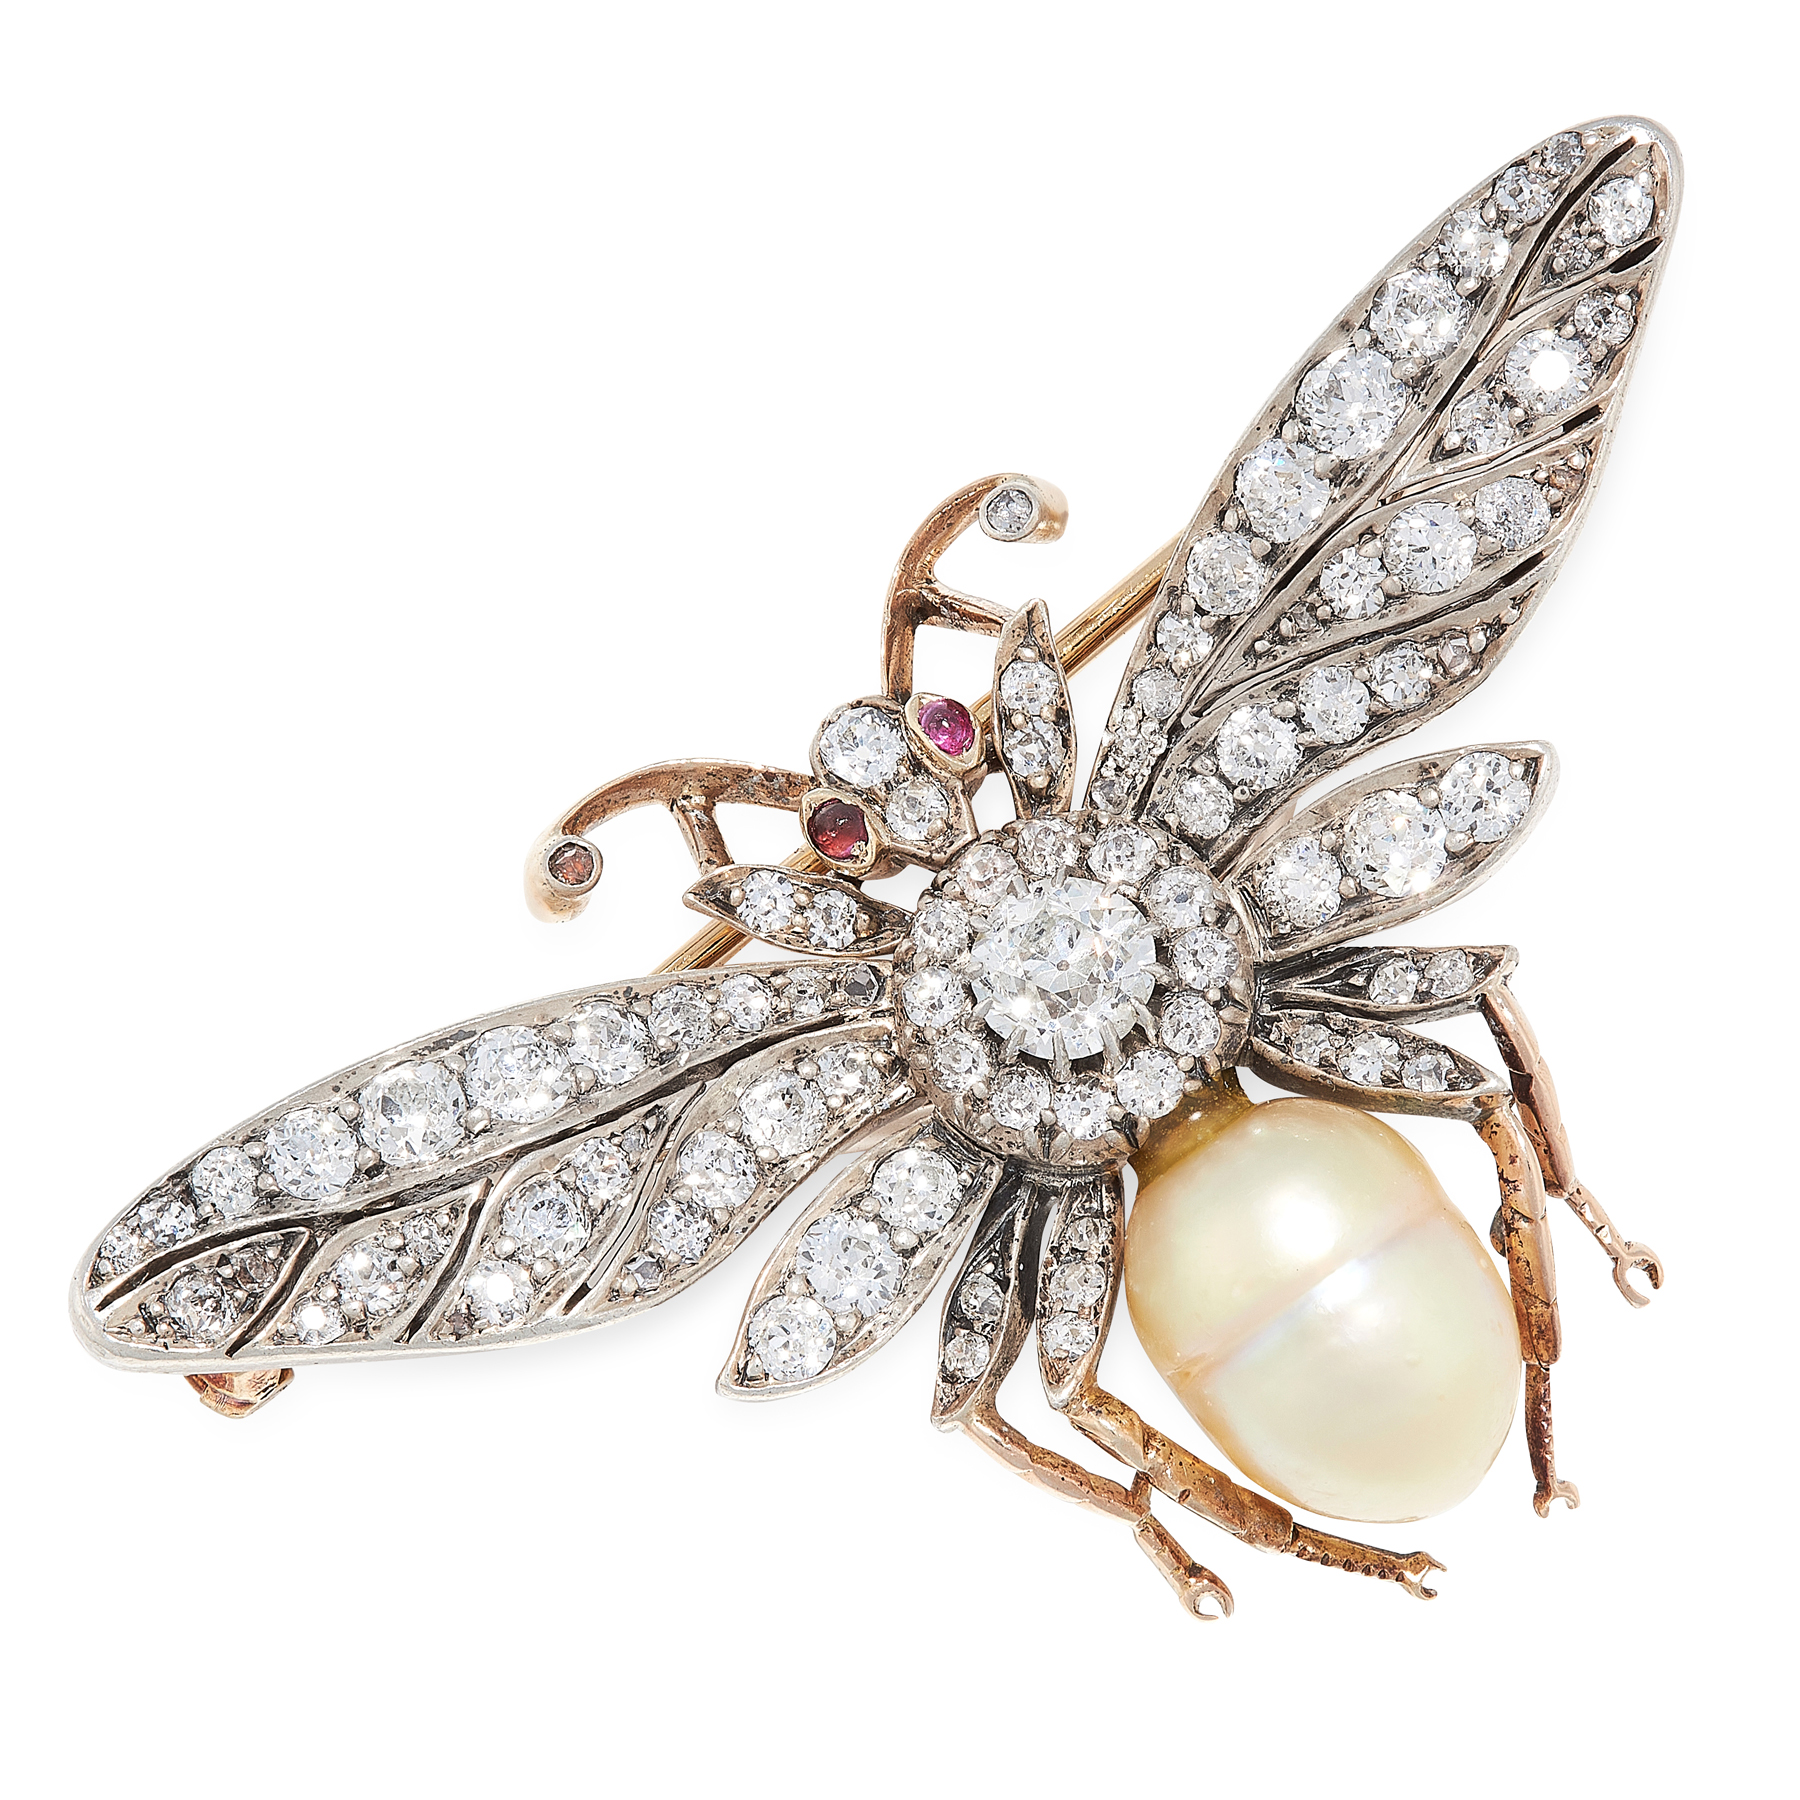 AN ANTIQUE NATURAL PEARL, DIAMOND AND RUBY BEE BROOCH, EARLY 20TH CENTURY designed as a bee, the